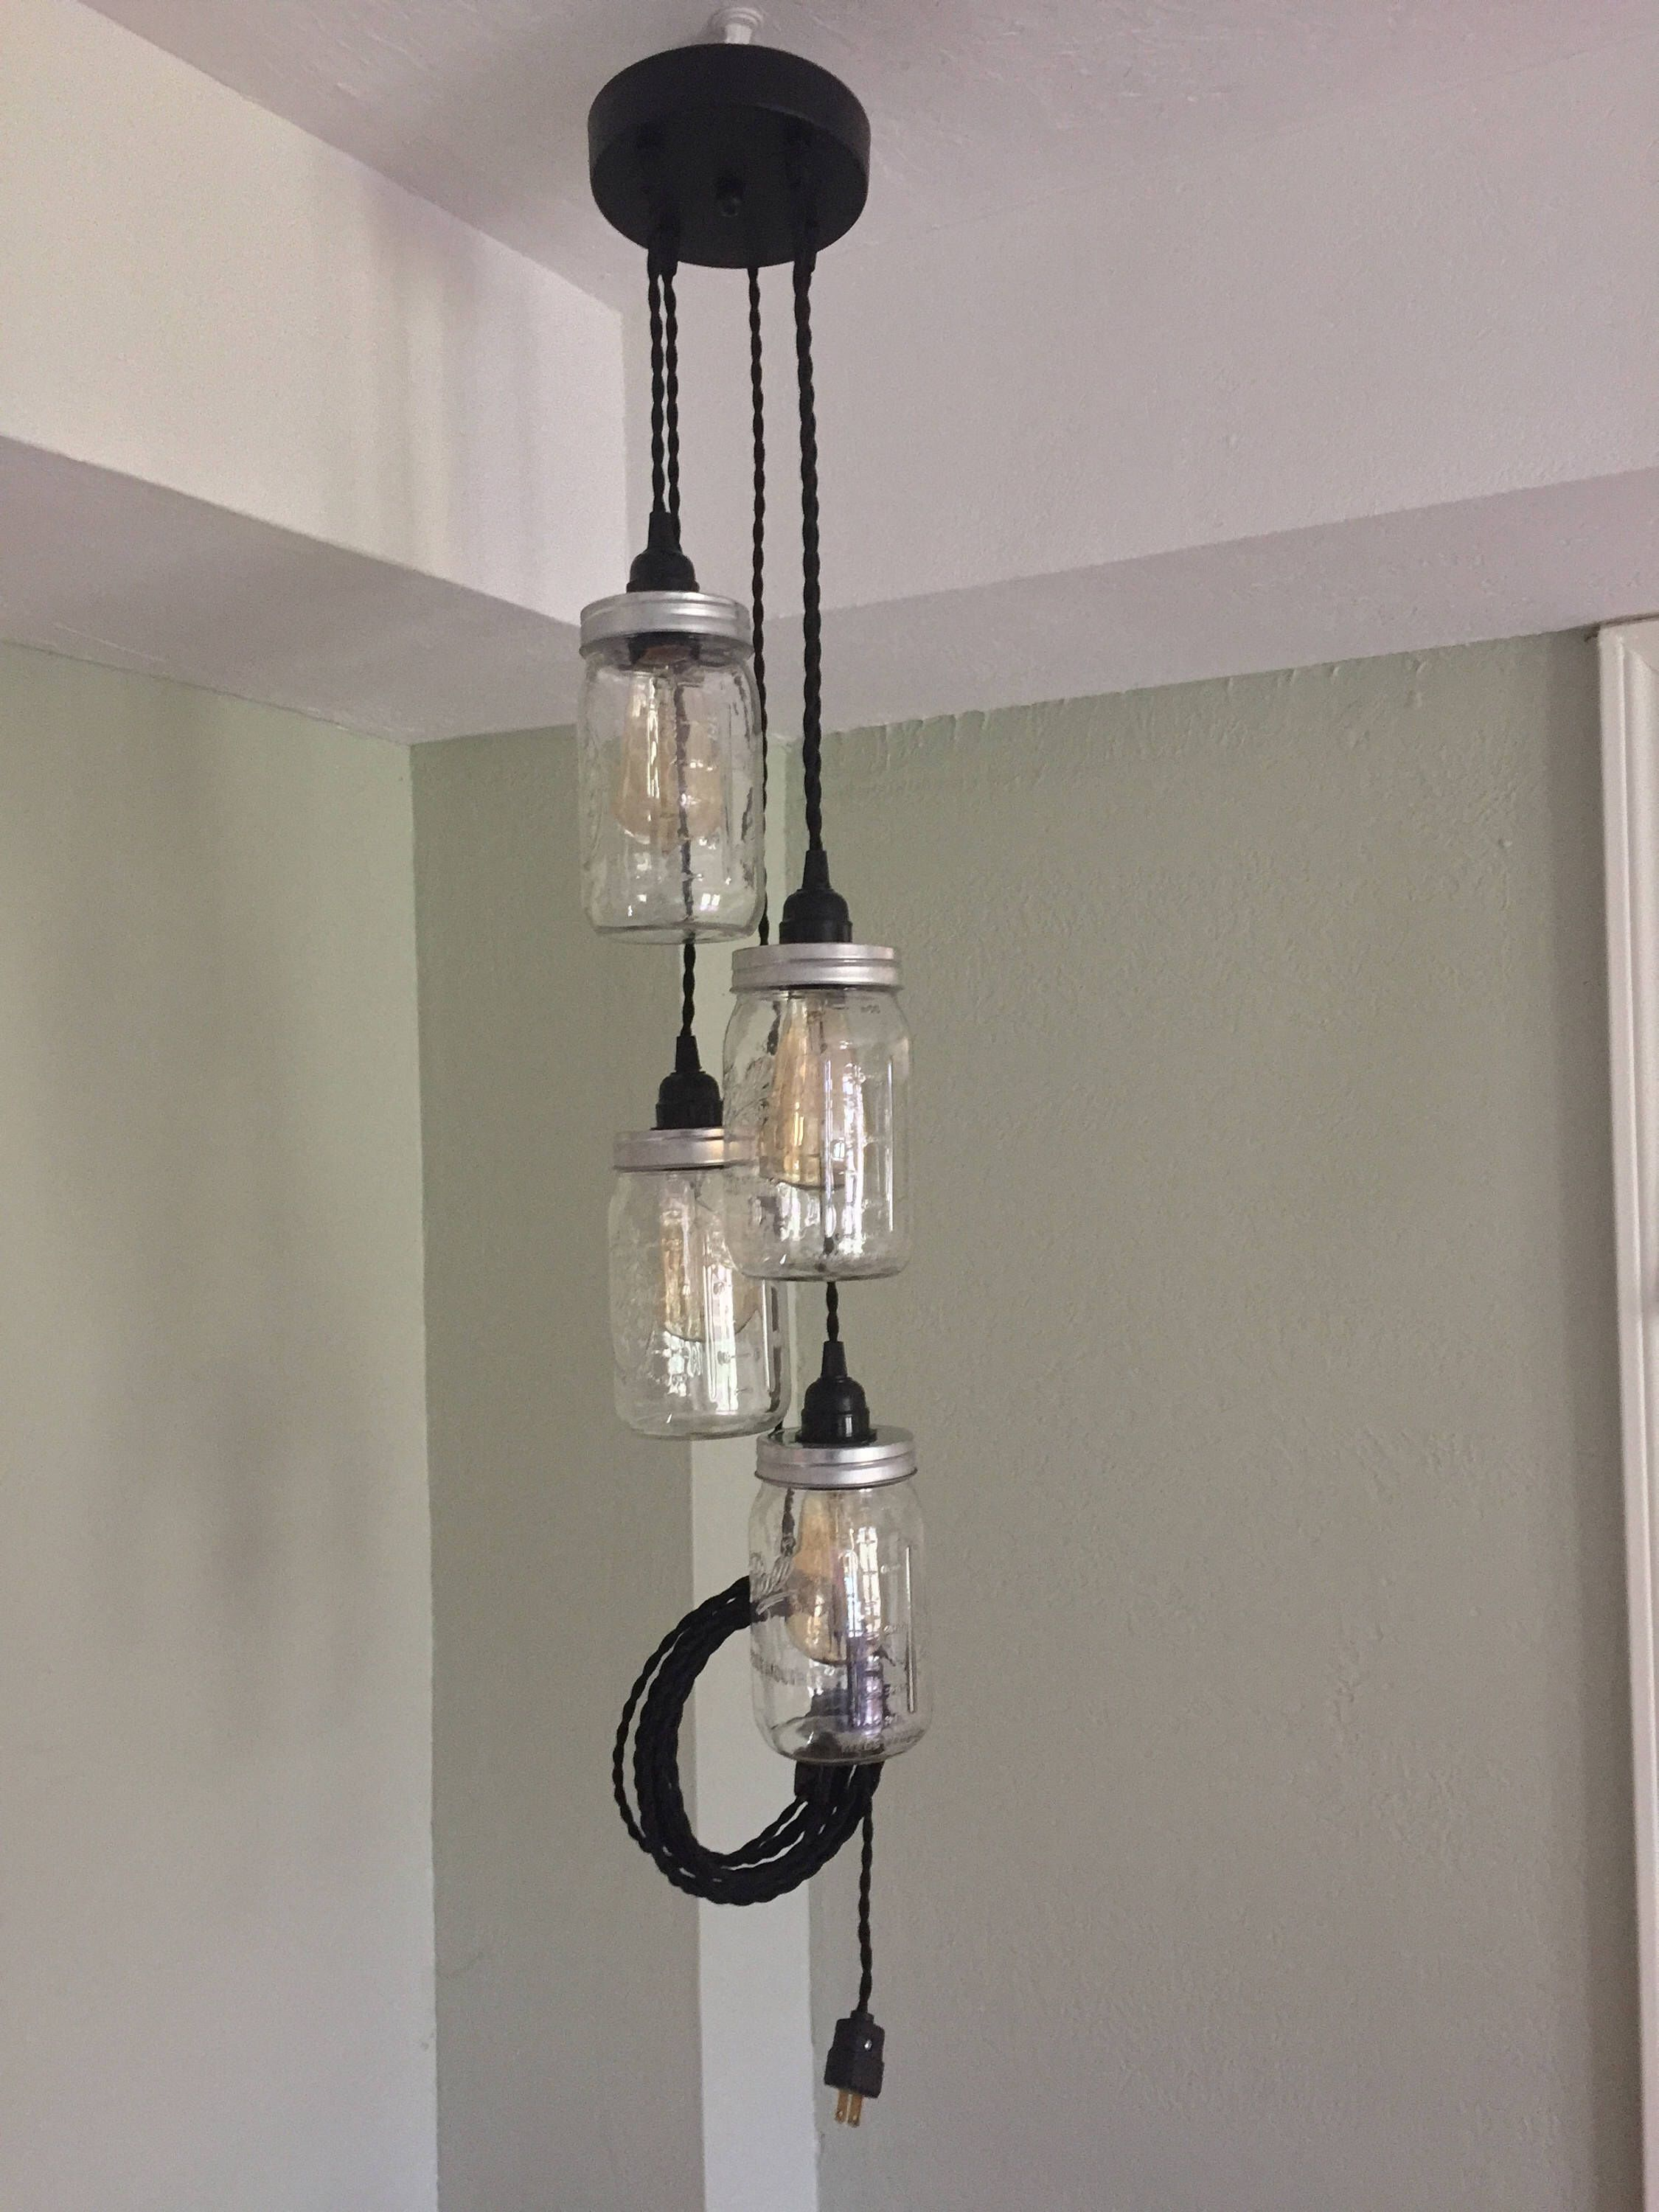 Jar chandelier swag light black canopy twisted cloth cord jar chandelier swag light black canopy twisted cloth cord hanging pendant lights plug in no hard wiring great for your edison bulbs arubaitofo Image collections